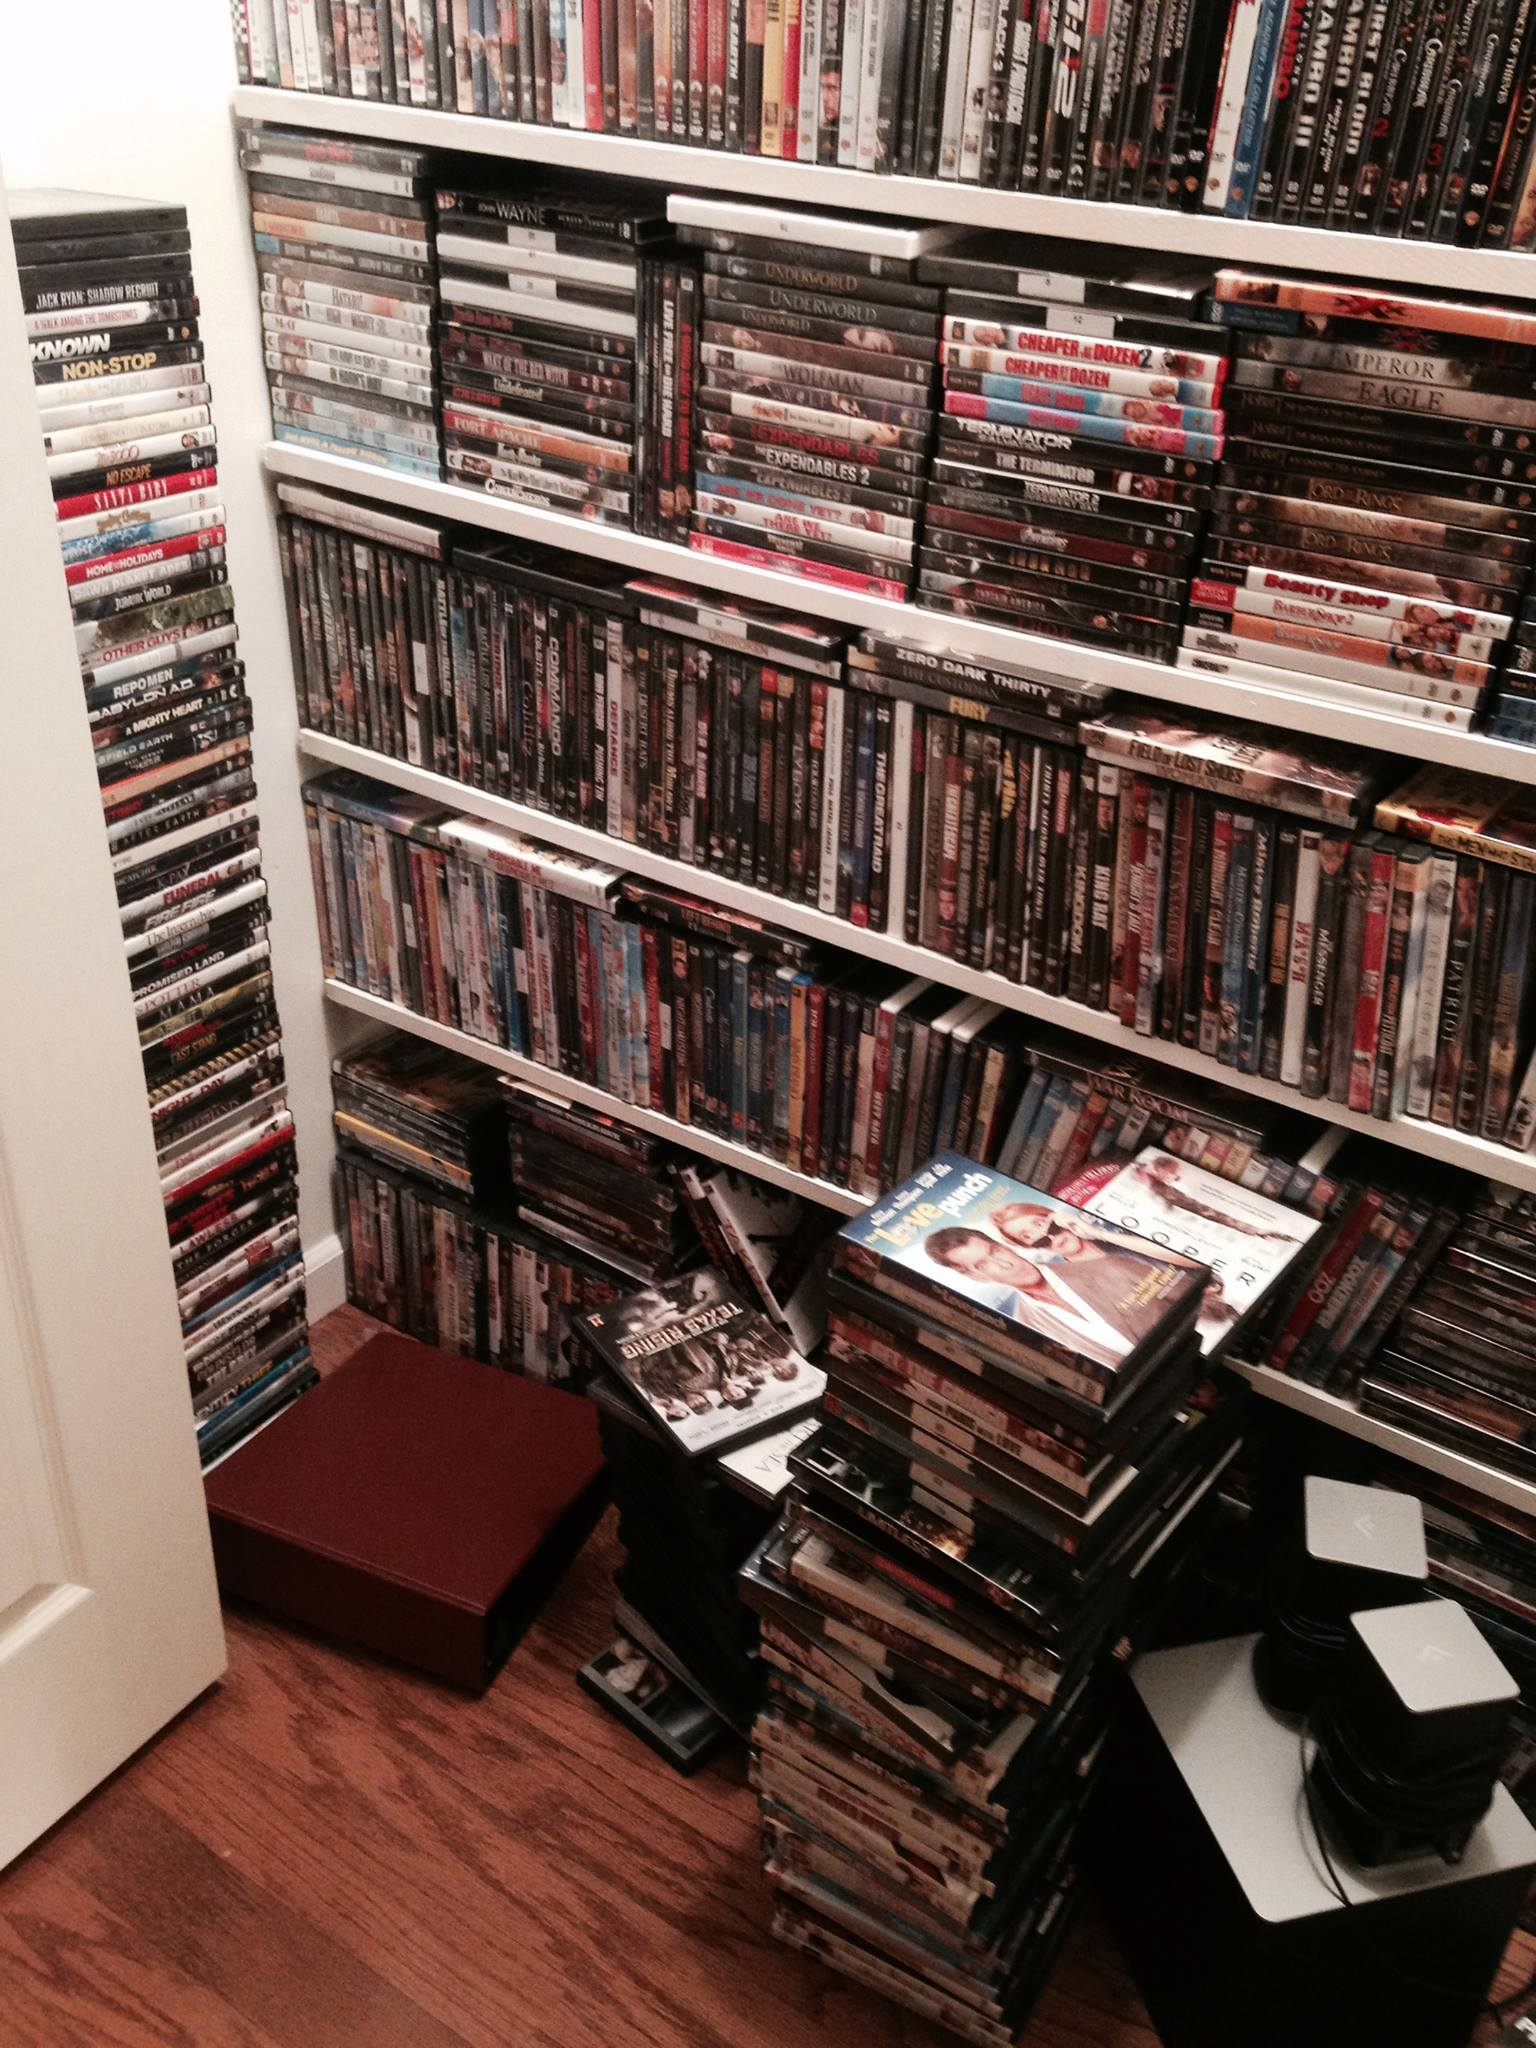 Organizing DVDs, DVD sleeves, organizing movies